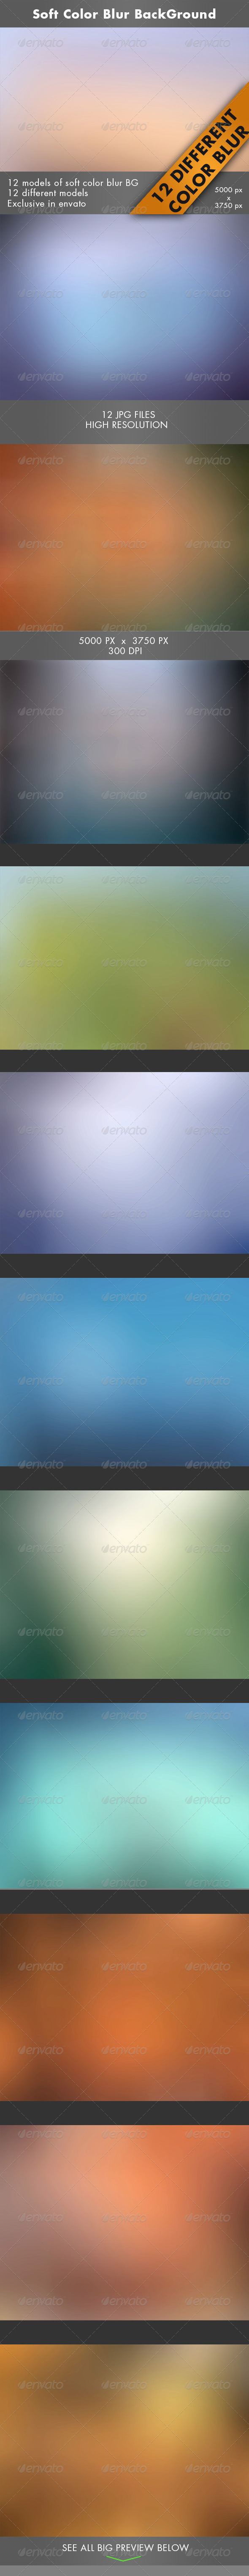 Soft Color Blur BackGround - Tech / Futuristic Backgrounds